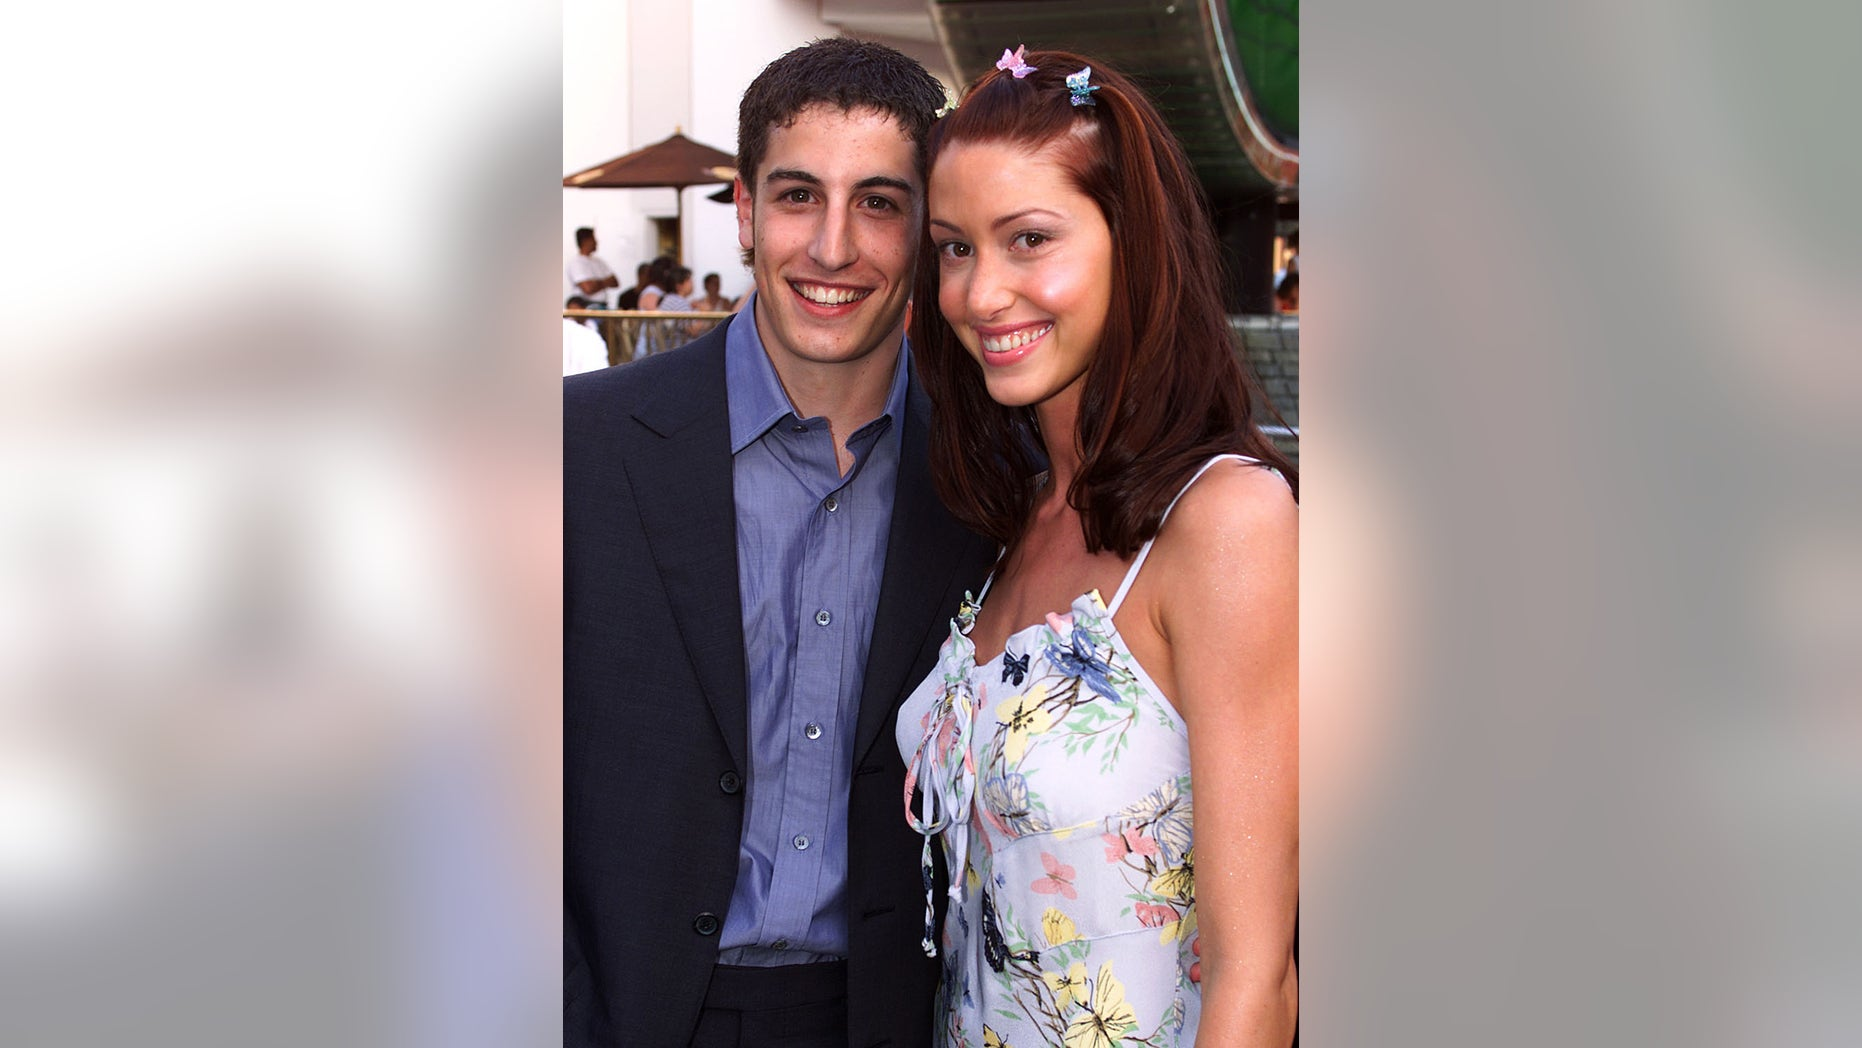 American Pie Nadia Boobs what became of 'american pie' star shannon elizabeth? | fox news